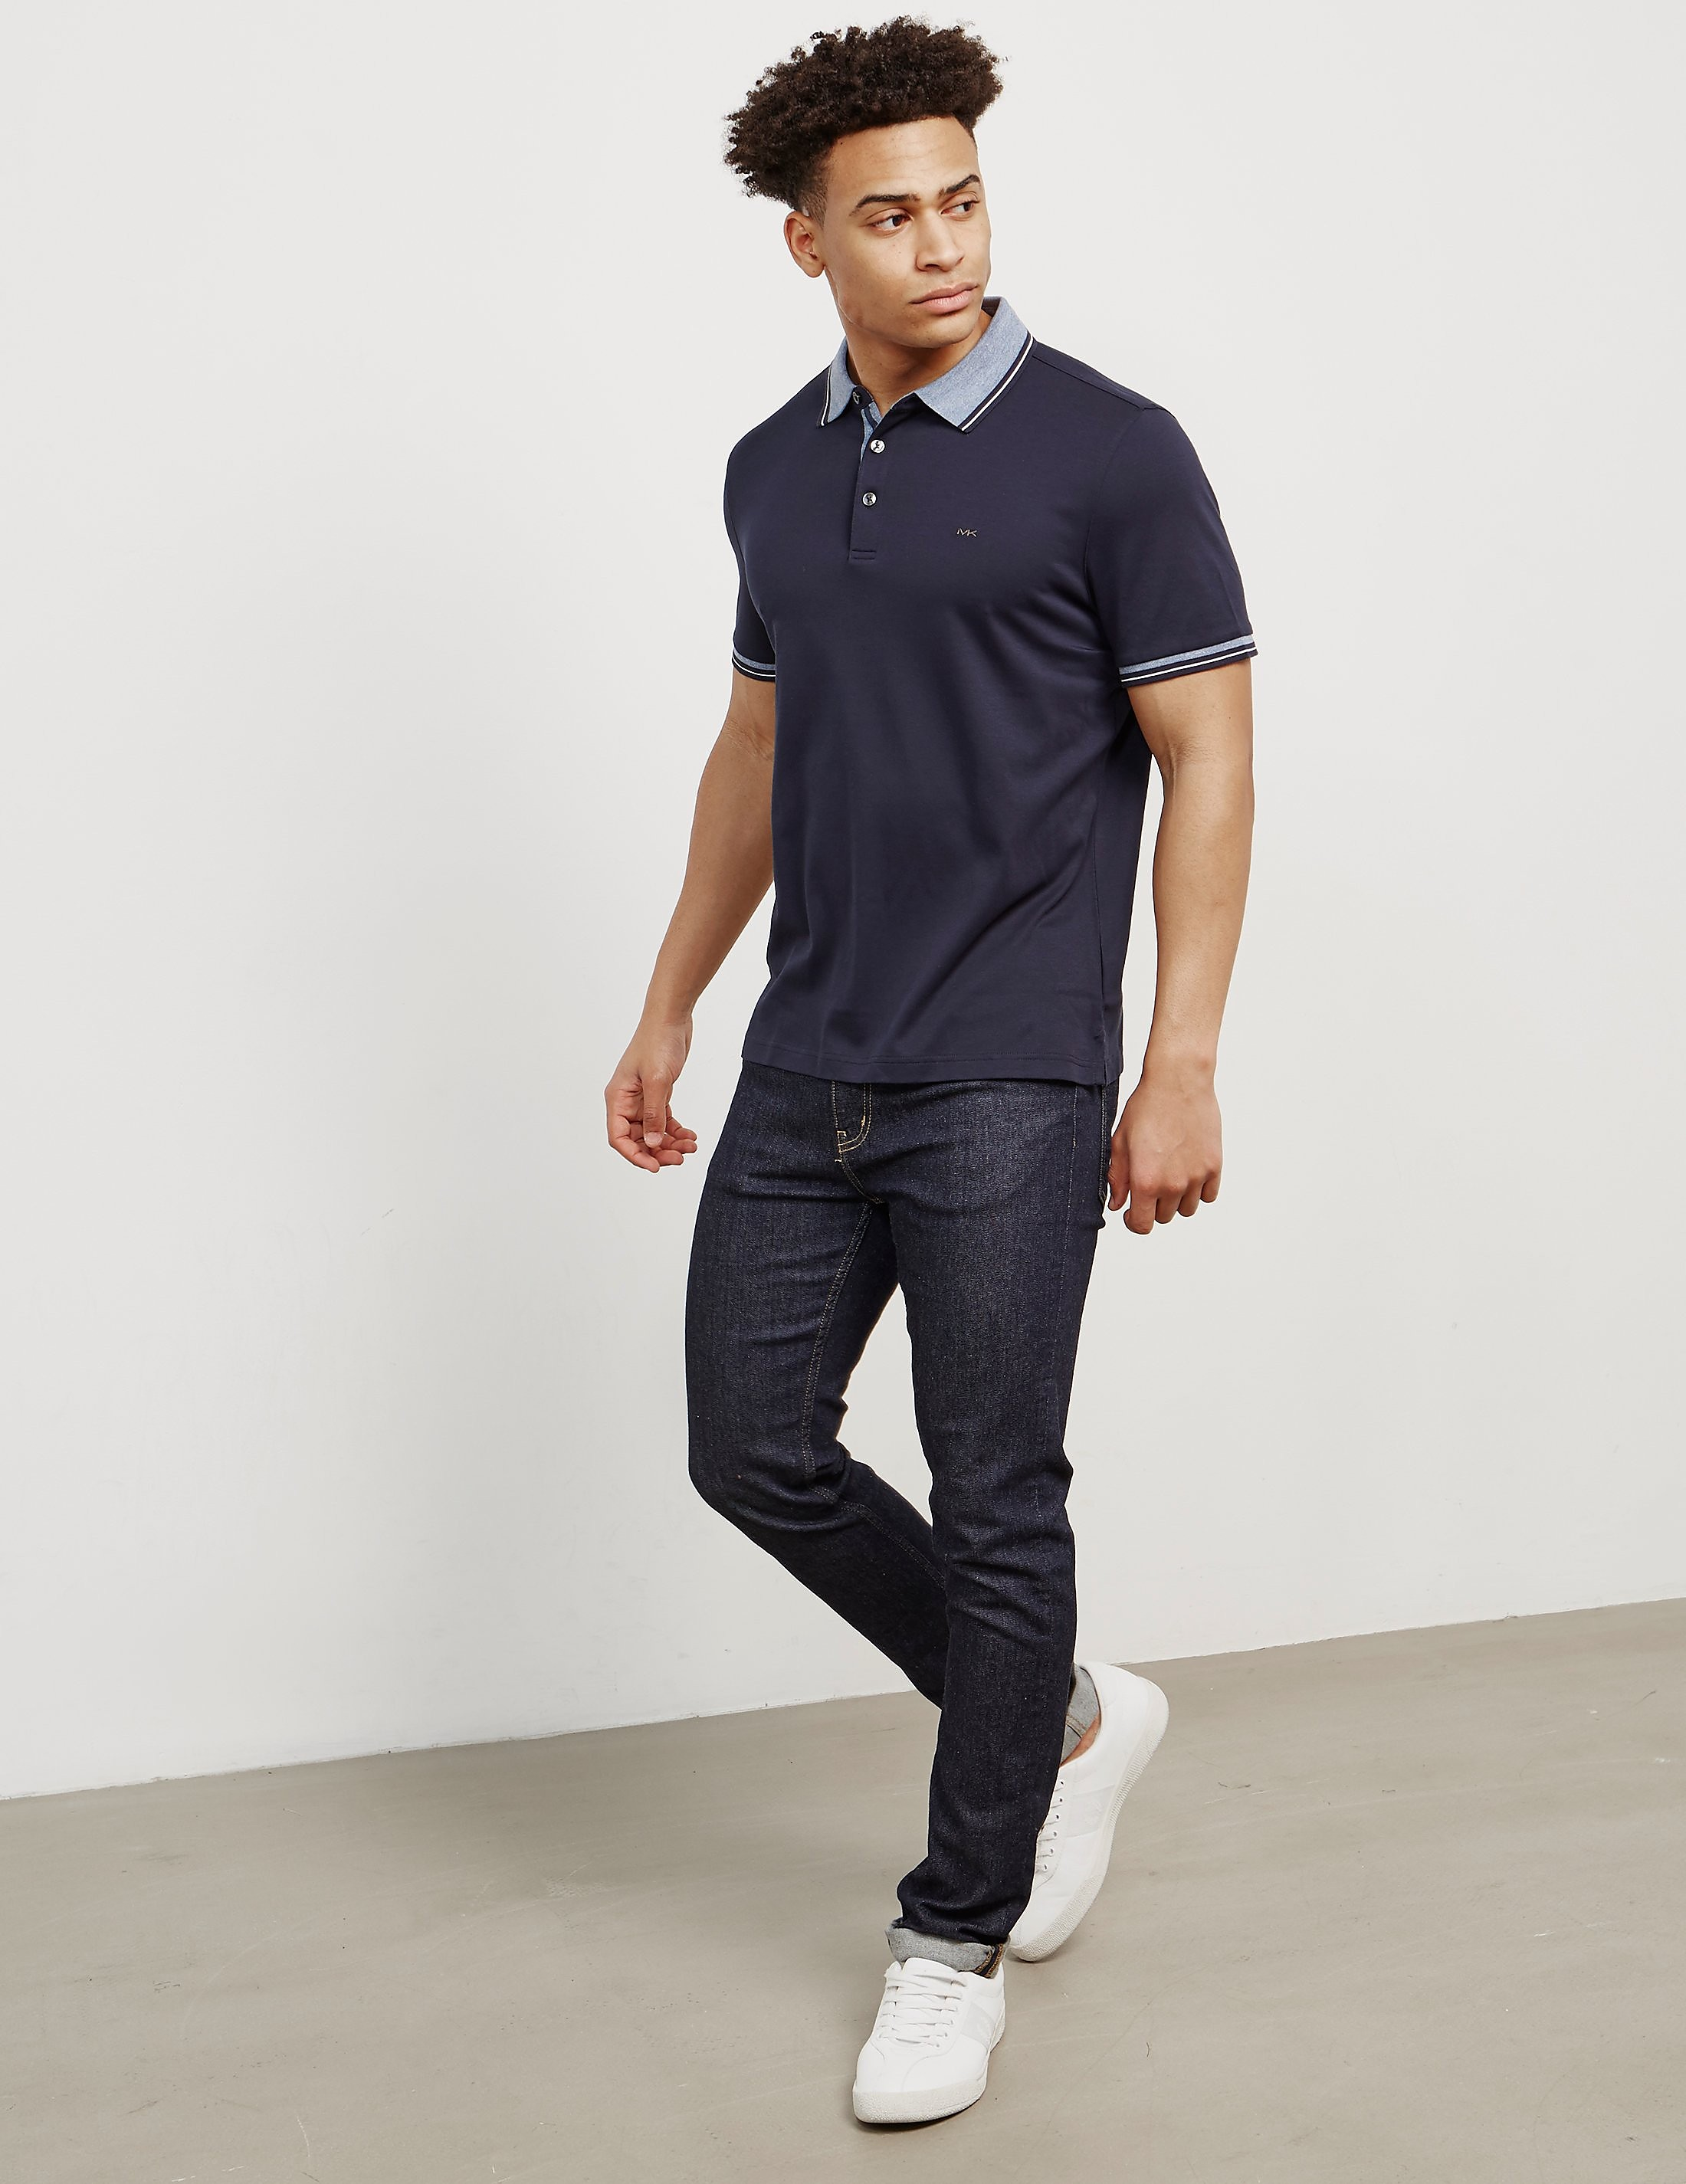 Michael Kors Greenwich Short Sleeve Polo Shirt